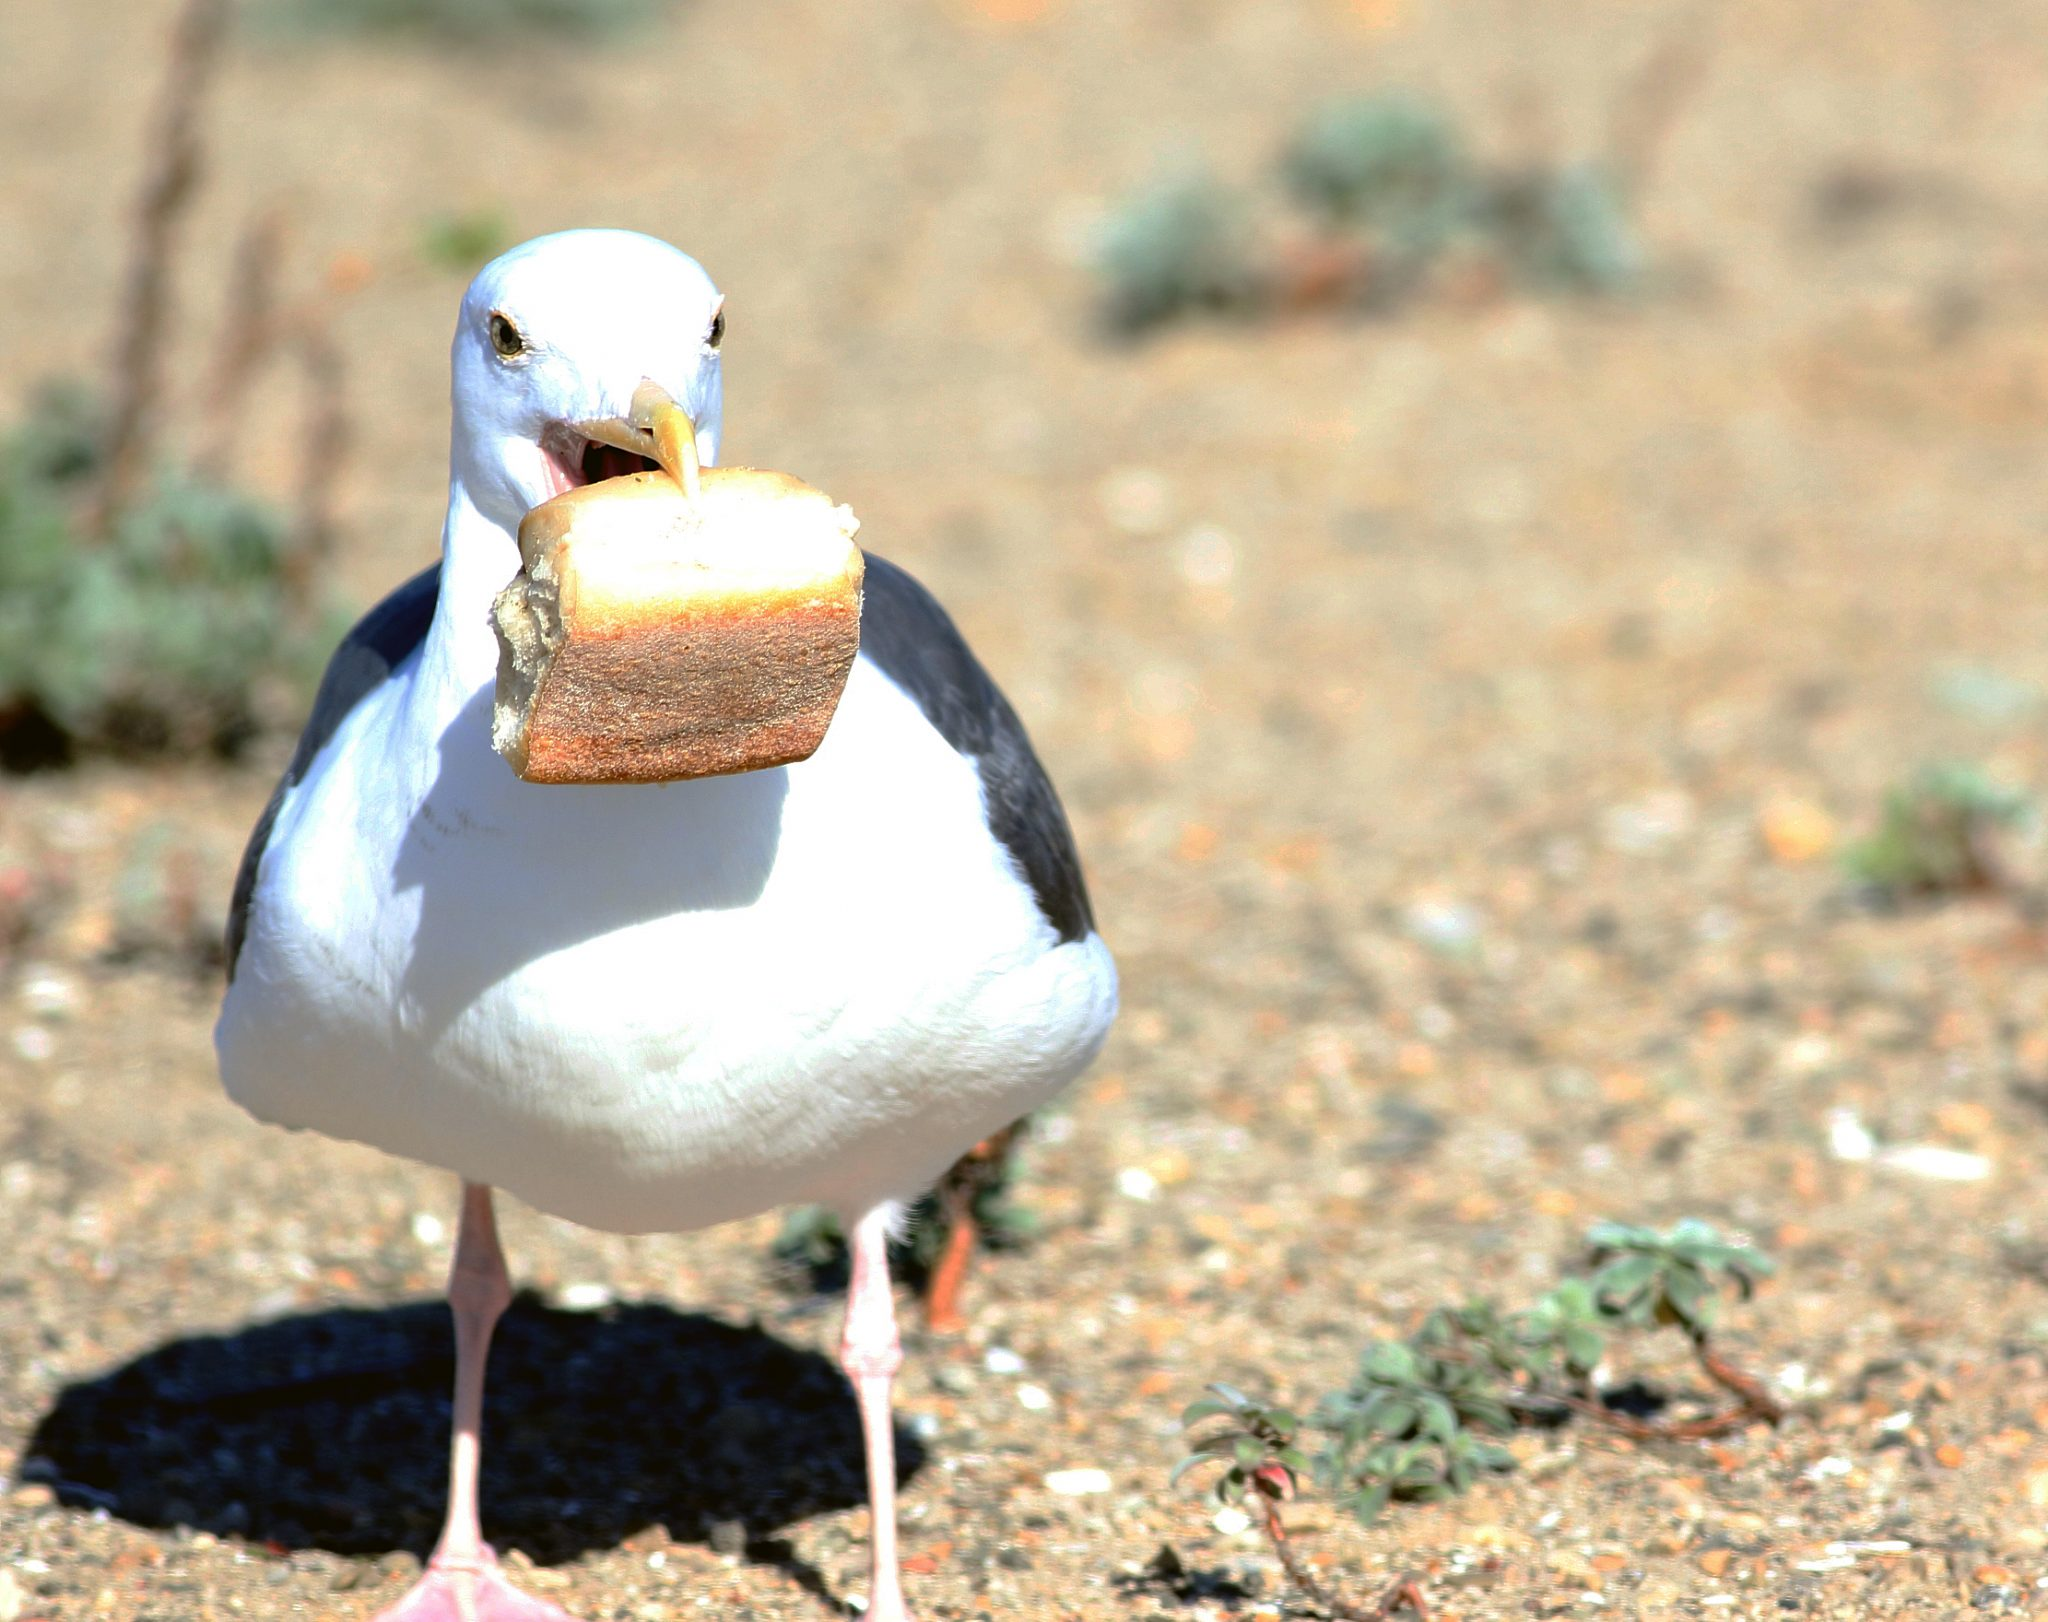 Seagulls less likely to steal food if you stare at them, study shows